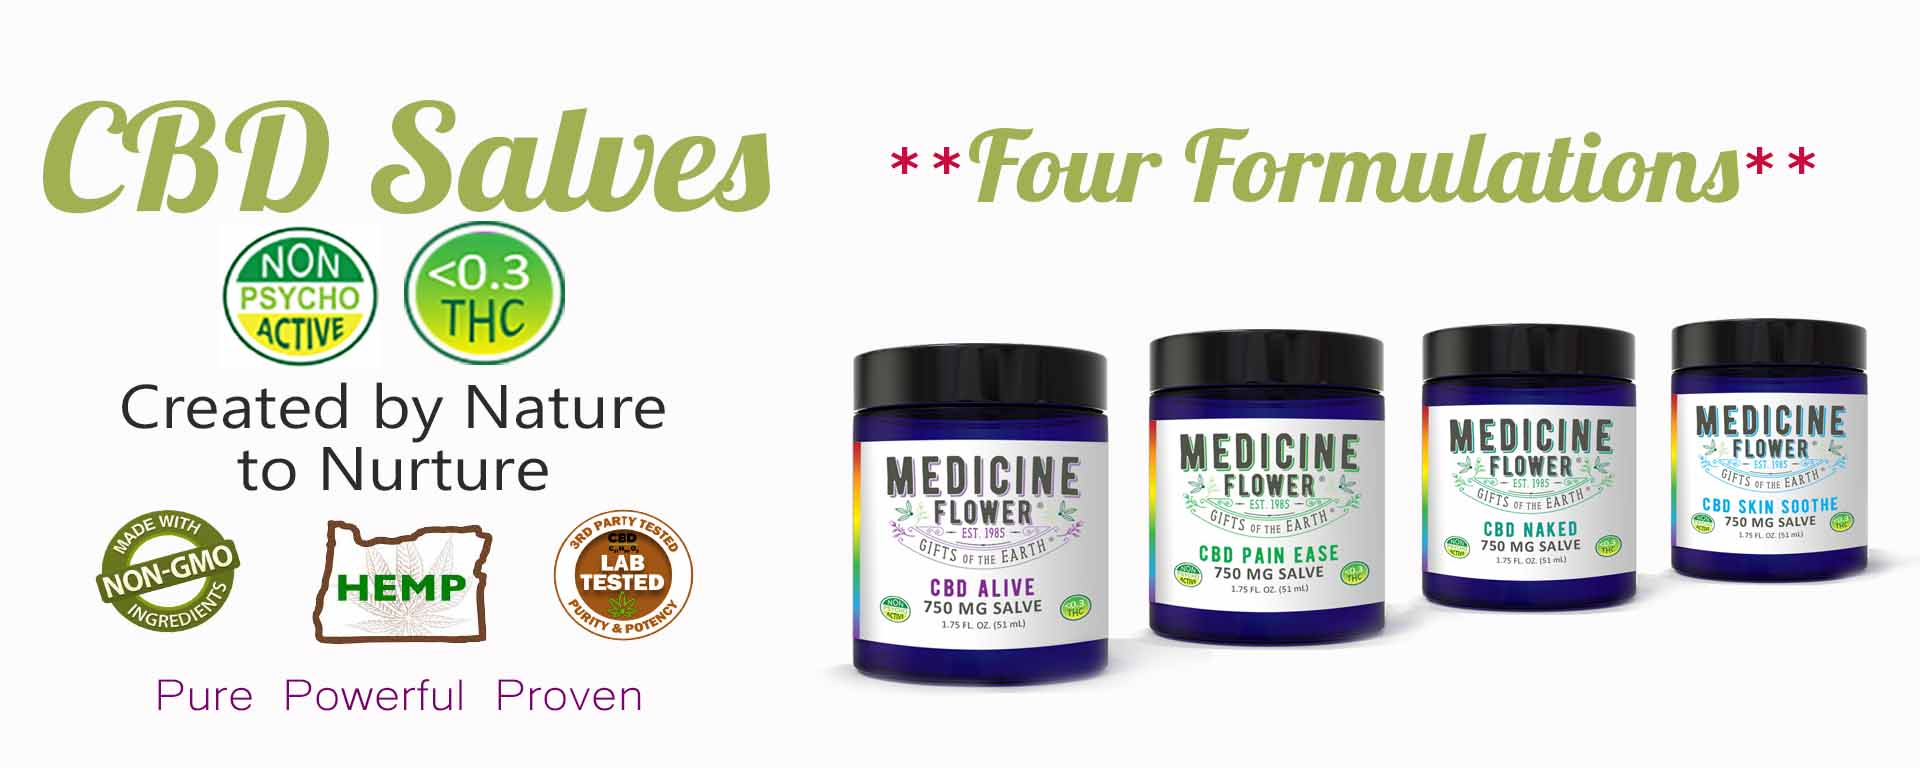 Medidine Flower CBD Salves